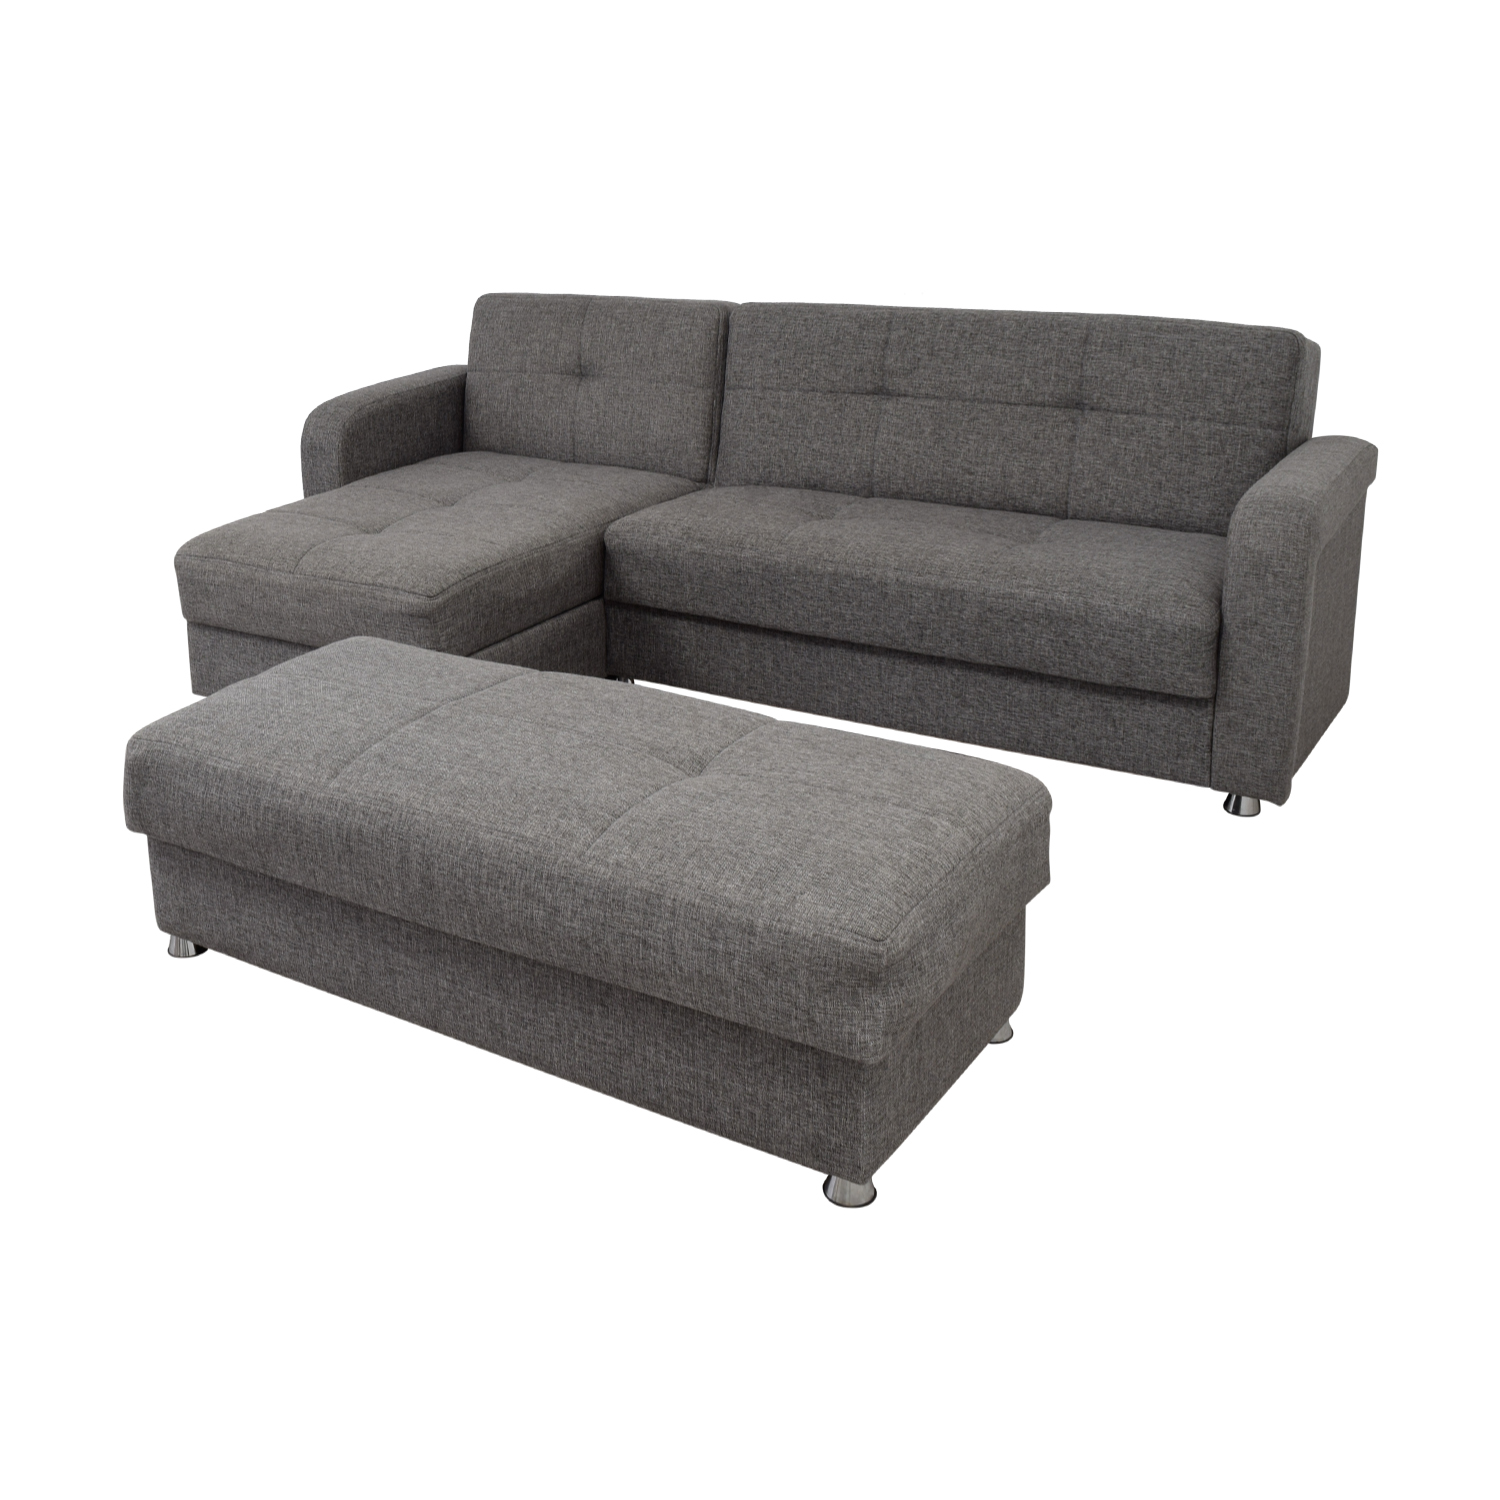 Awesome 54 Off Istikbal Istikbal Grey Convertible Sectional Sofa With Ottoman Bench Sofas Squirreltailoven Fun Painted Chair Ideas Images Squirreltailovenorg